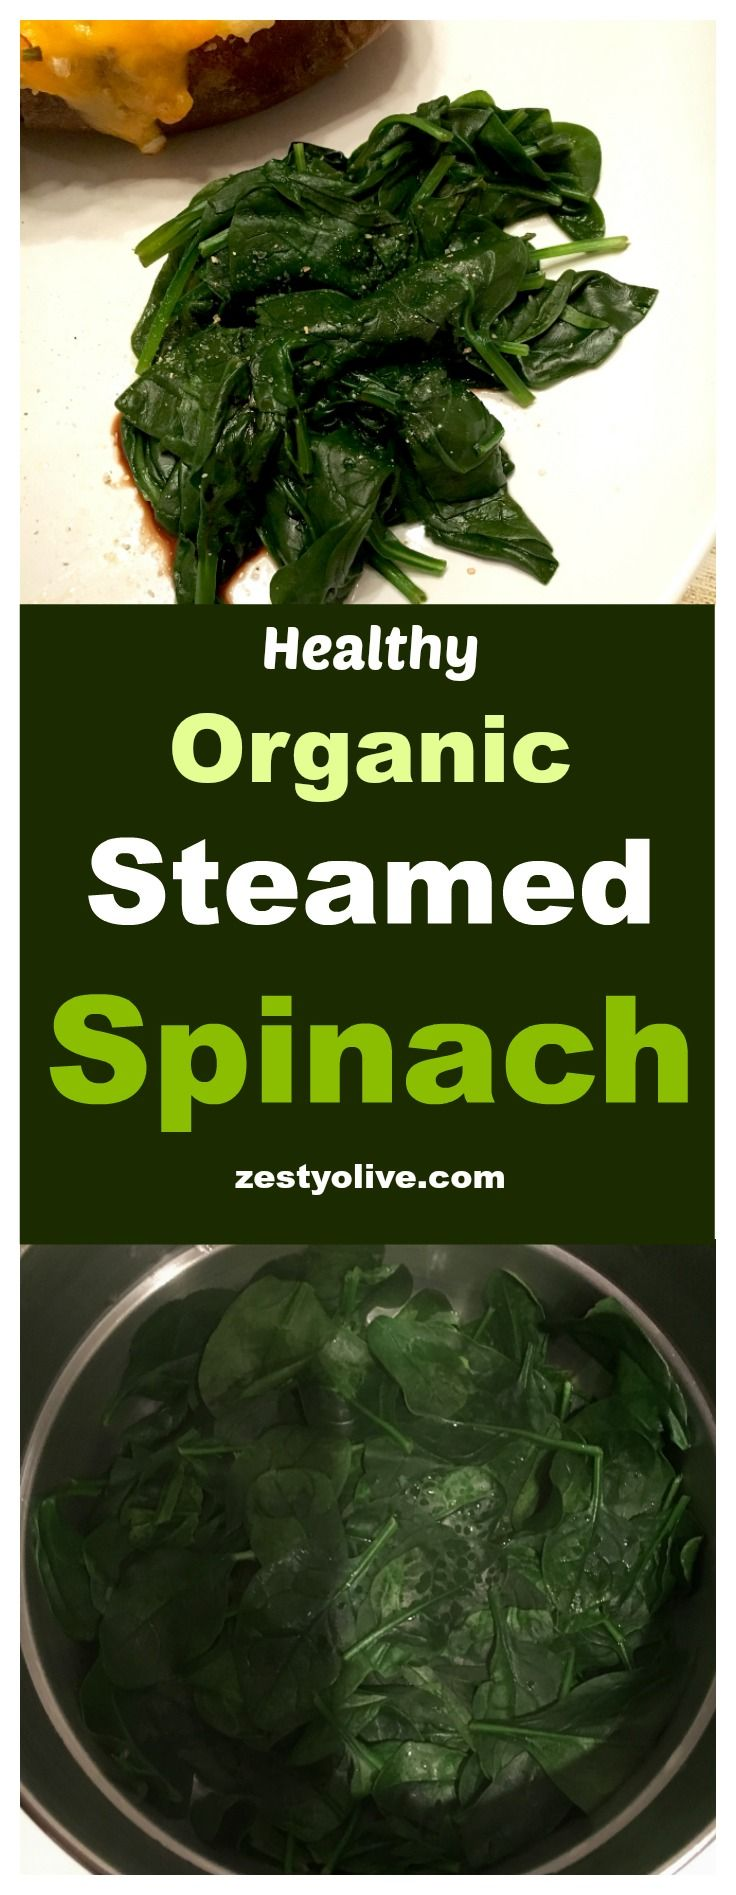 Organic Steamed Spinach With Balsamic Vinegar